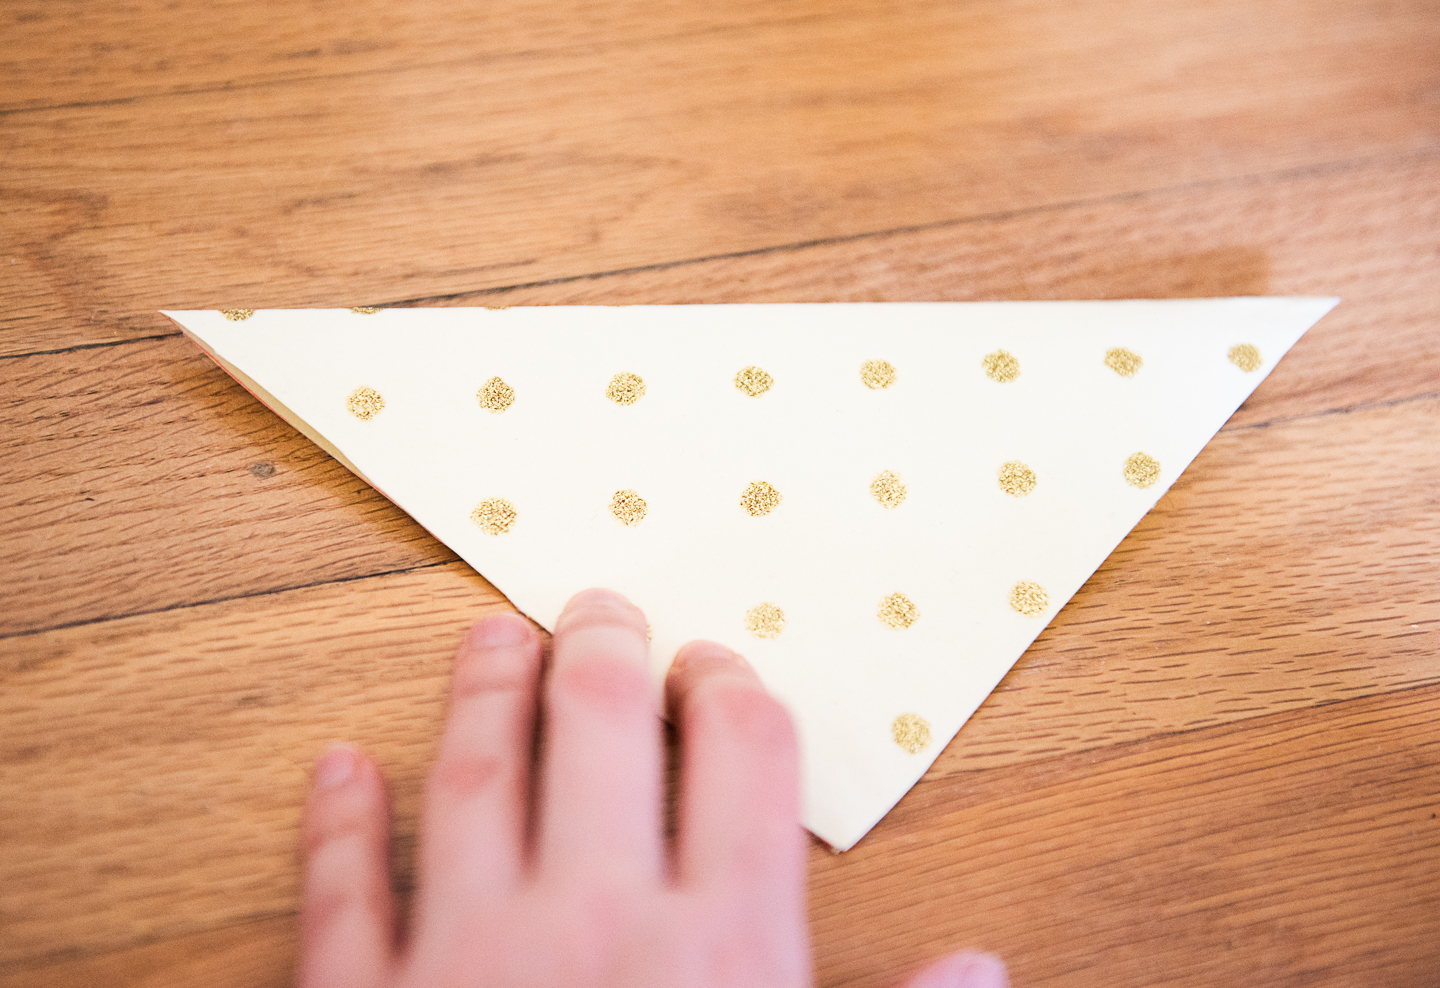 DIY Paper Banner from Upcycled Wrapping Paper